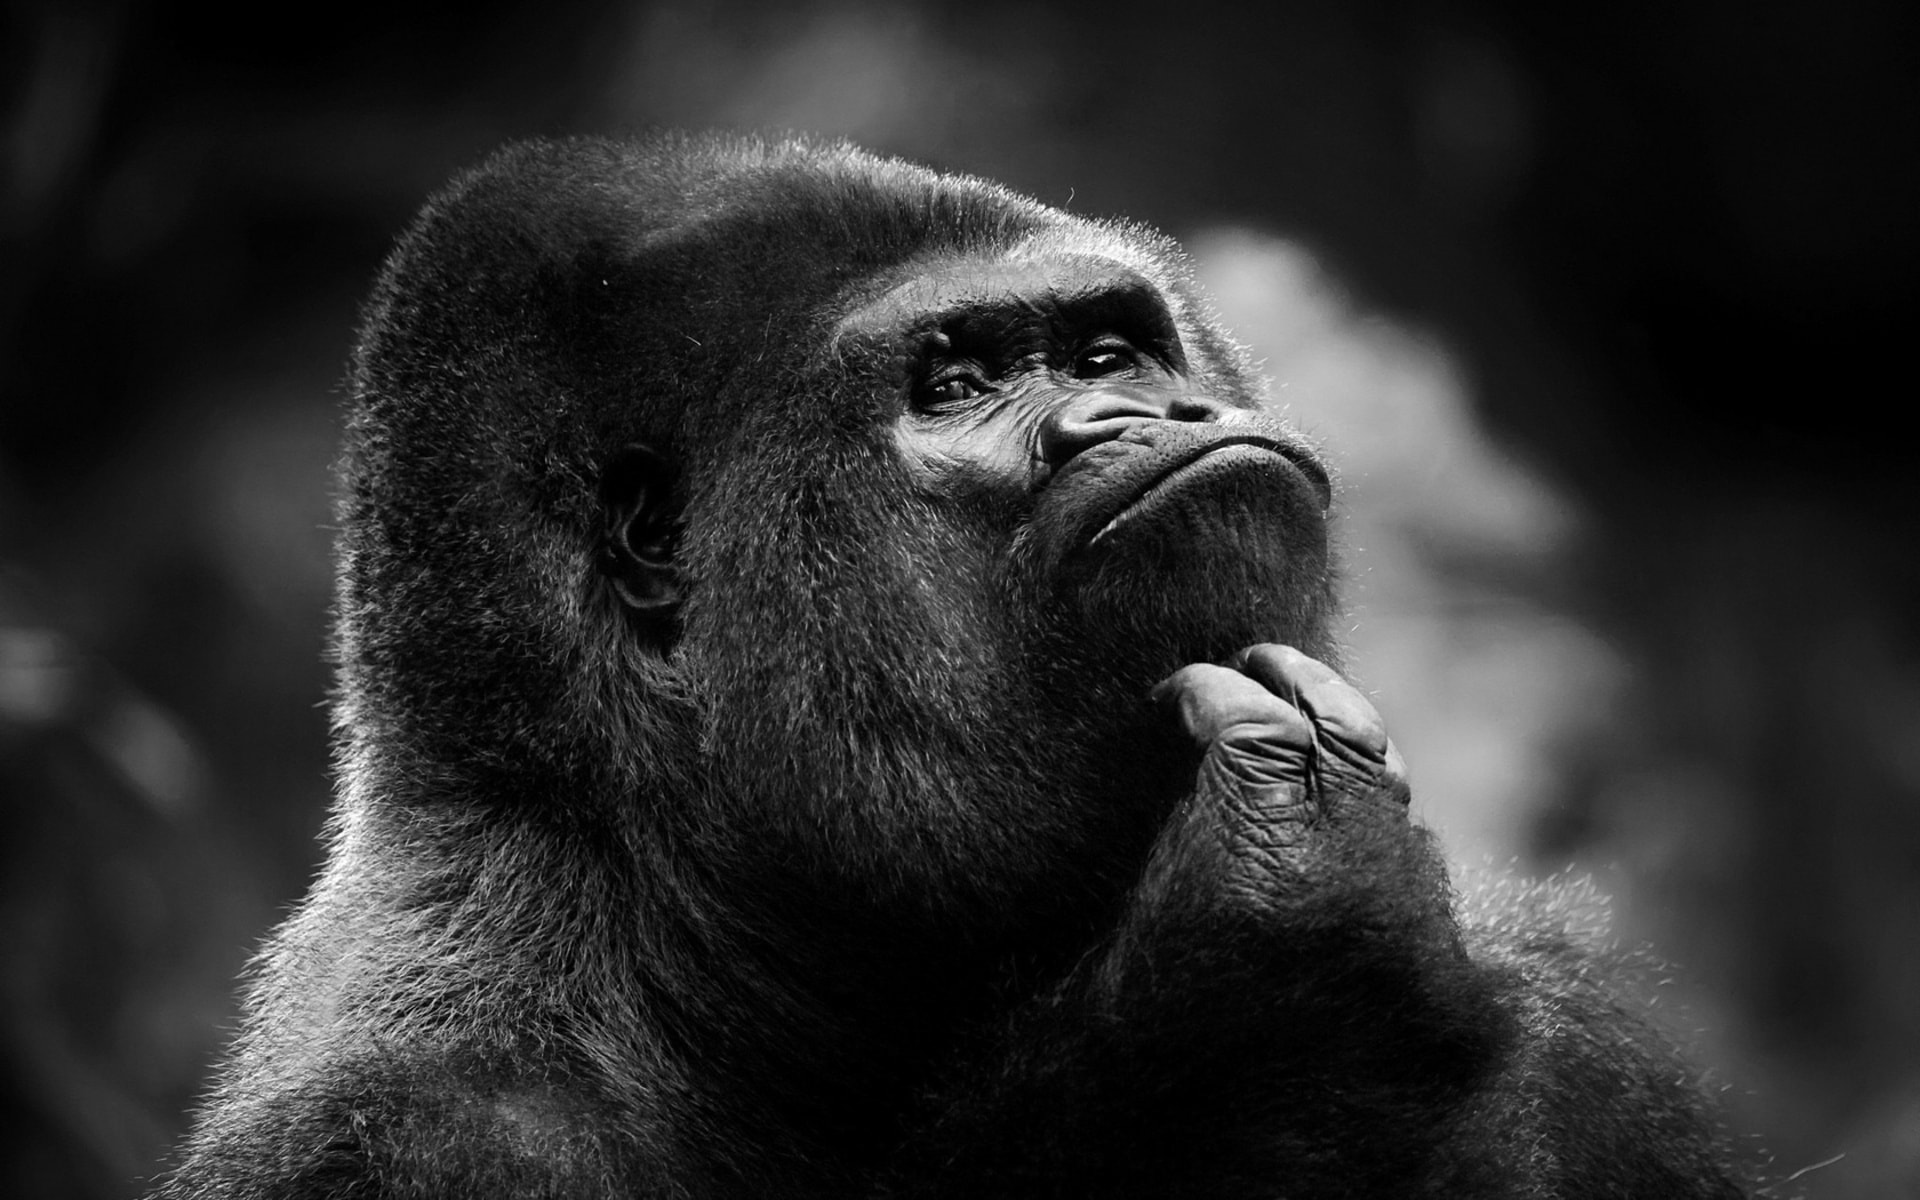 Gorilla HD Wallpapers